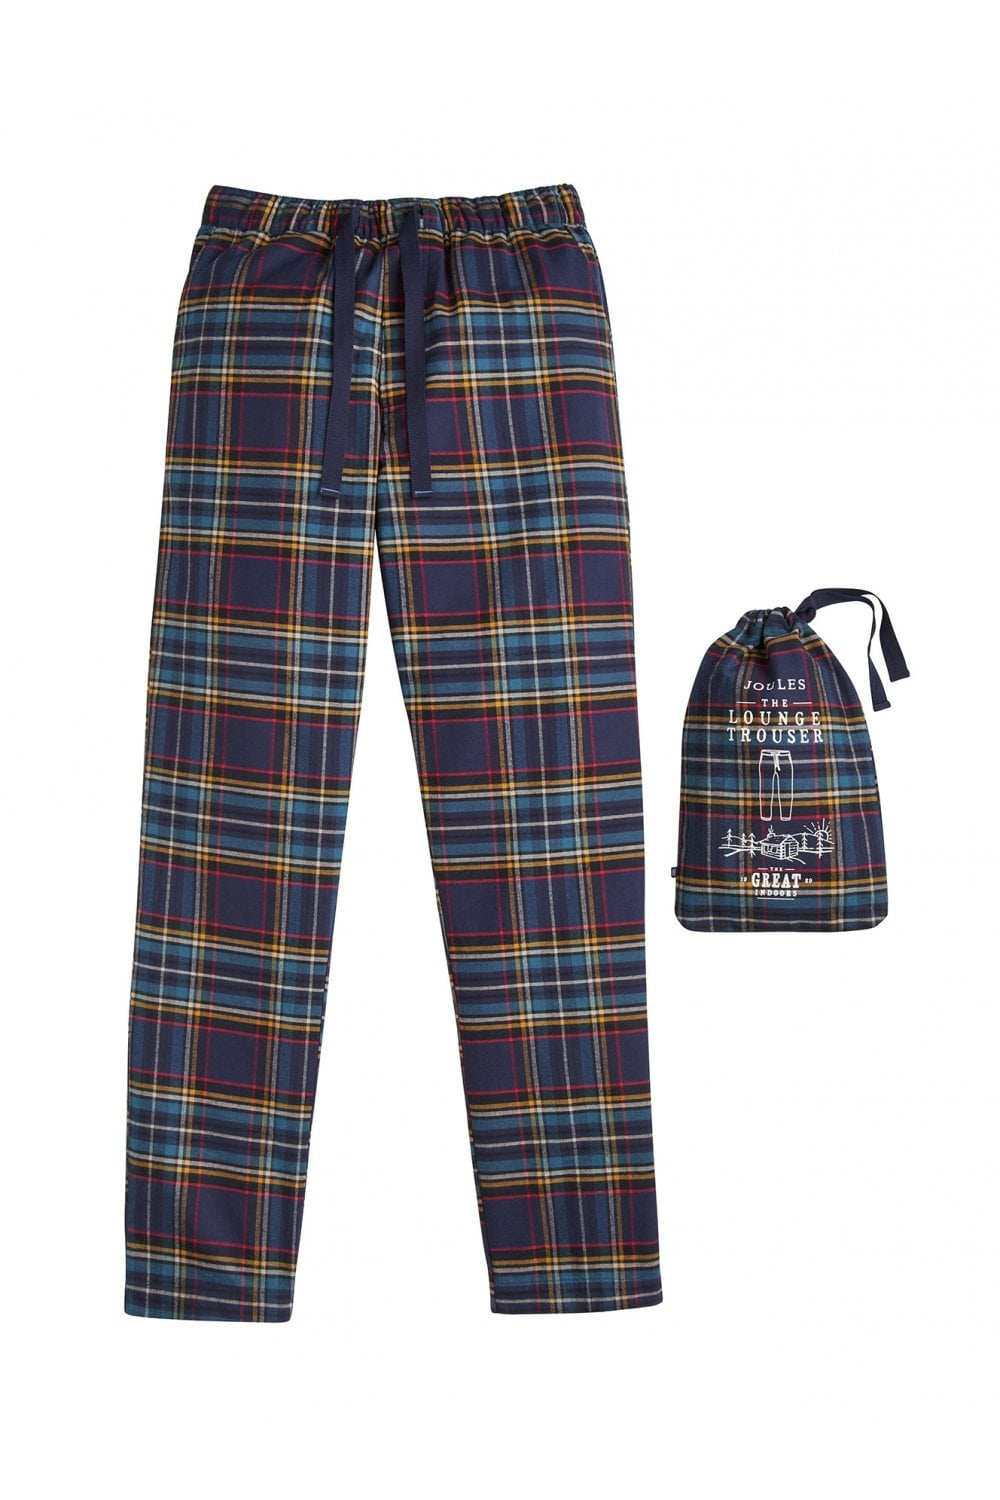 Joules Mens The Sleeper Checked Lounge Trousers - Navy Check ... e893b4838